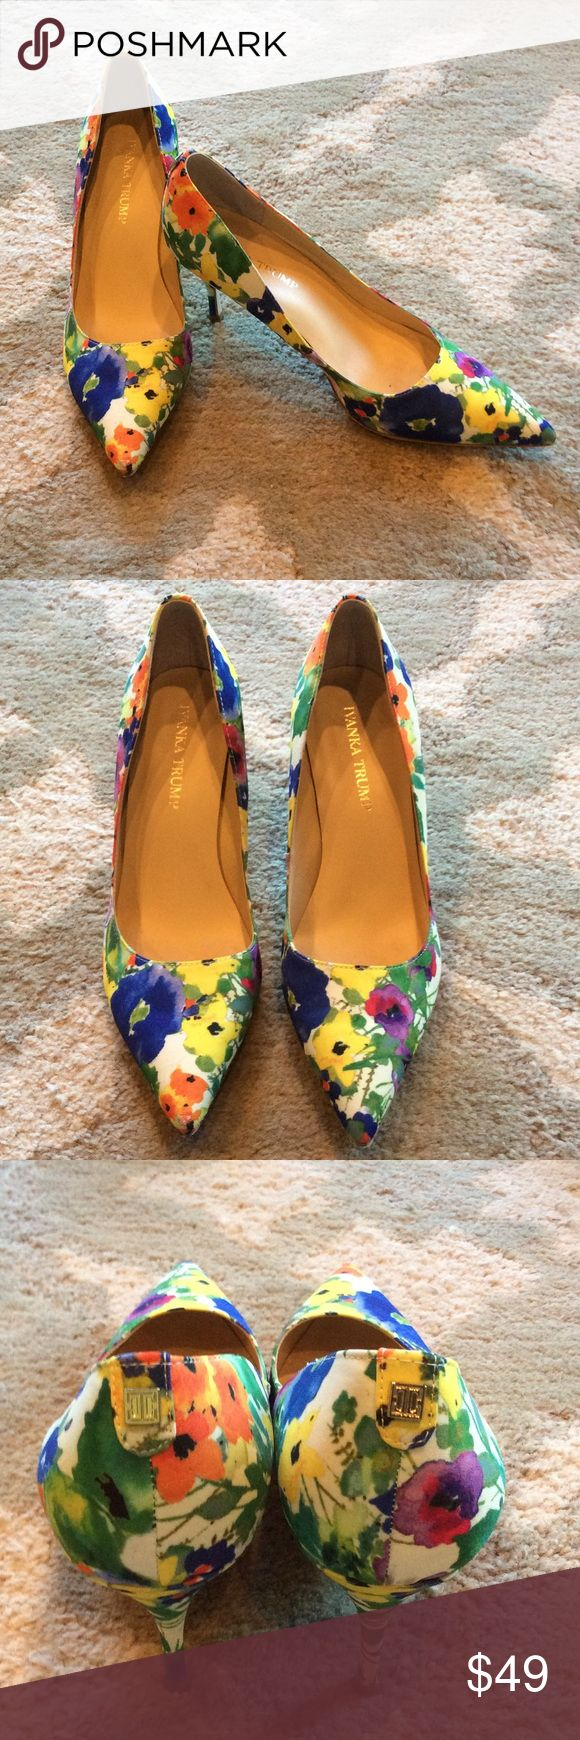 Ivanka Trump Floral Kitten Heels Beautiful bright floral fabric heels from Ivanka Trump. Purchased at Nordstrom. Was between sizes and now are too small. Very wearable heel height. Worn once. Ivanka Trump Shoes Heels